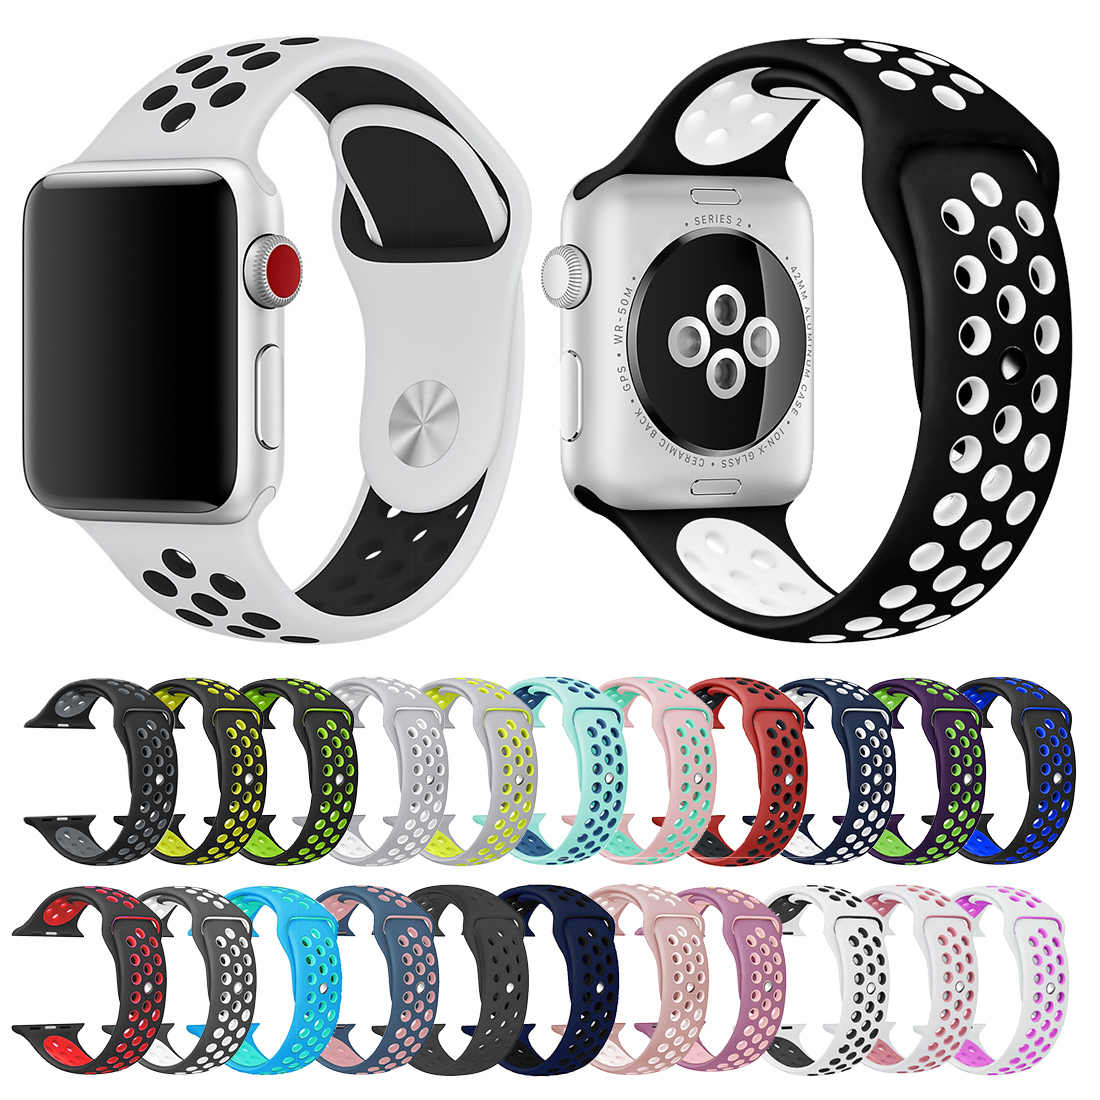 Soft Silicone Replacement Wristband for Apple Watch Series 1 2 3 Breathable hole iwatch band 42mm iwatch watchband 38mm strap